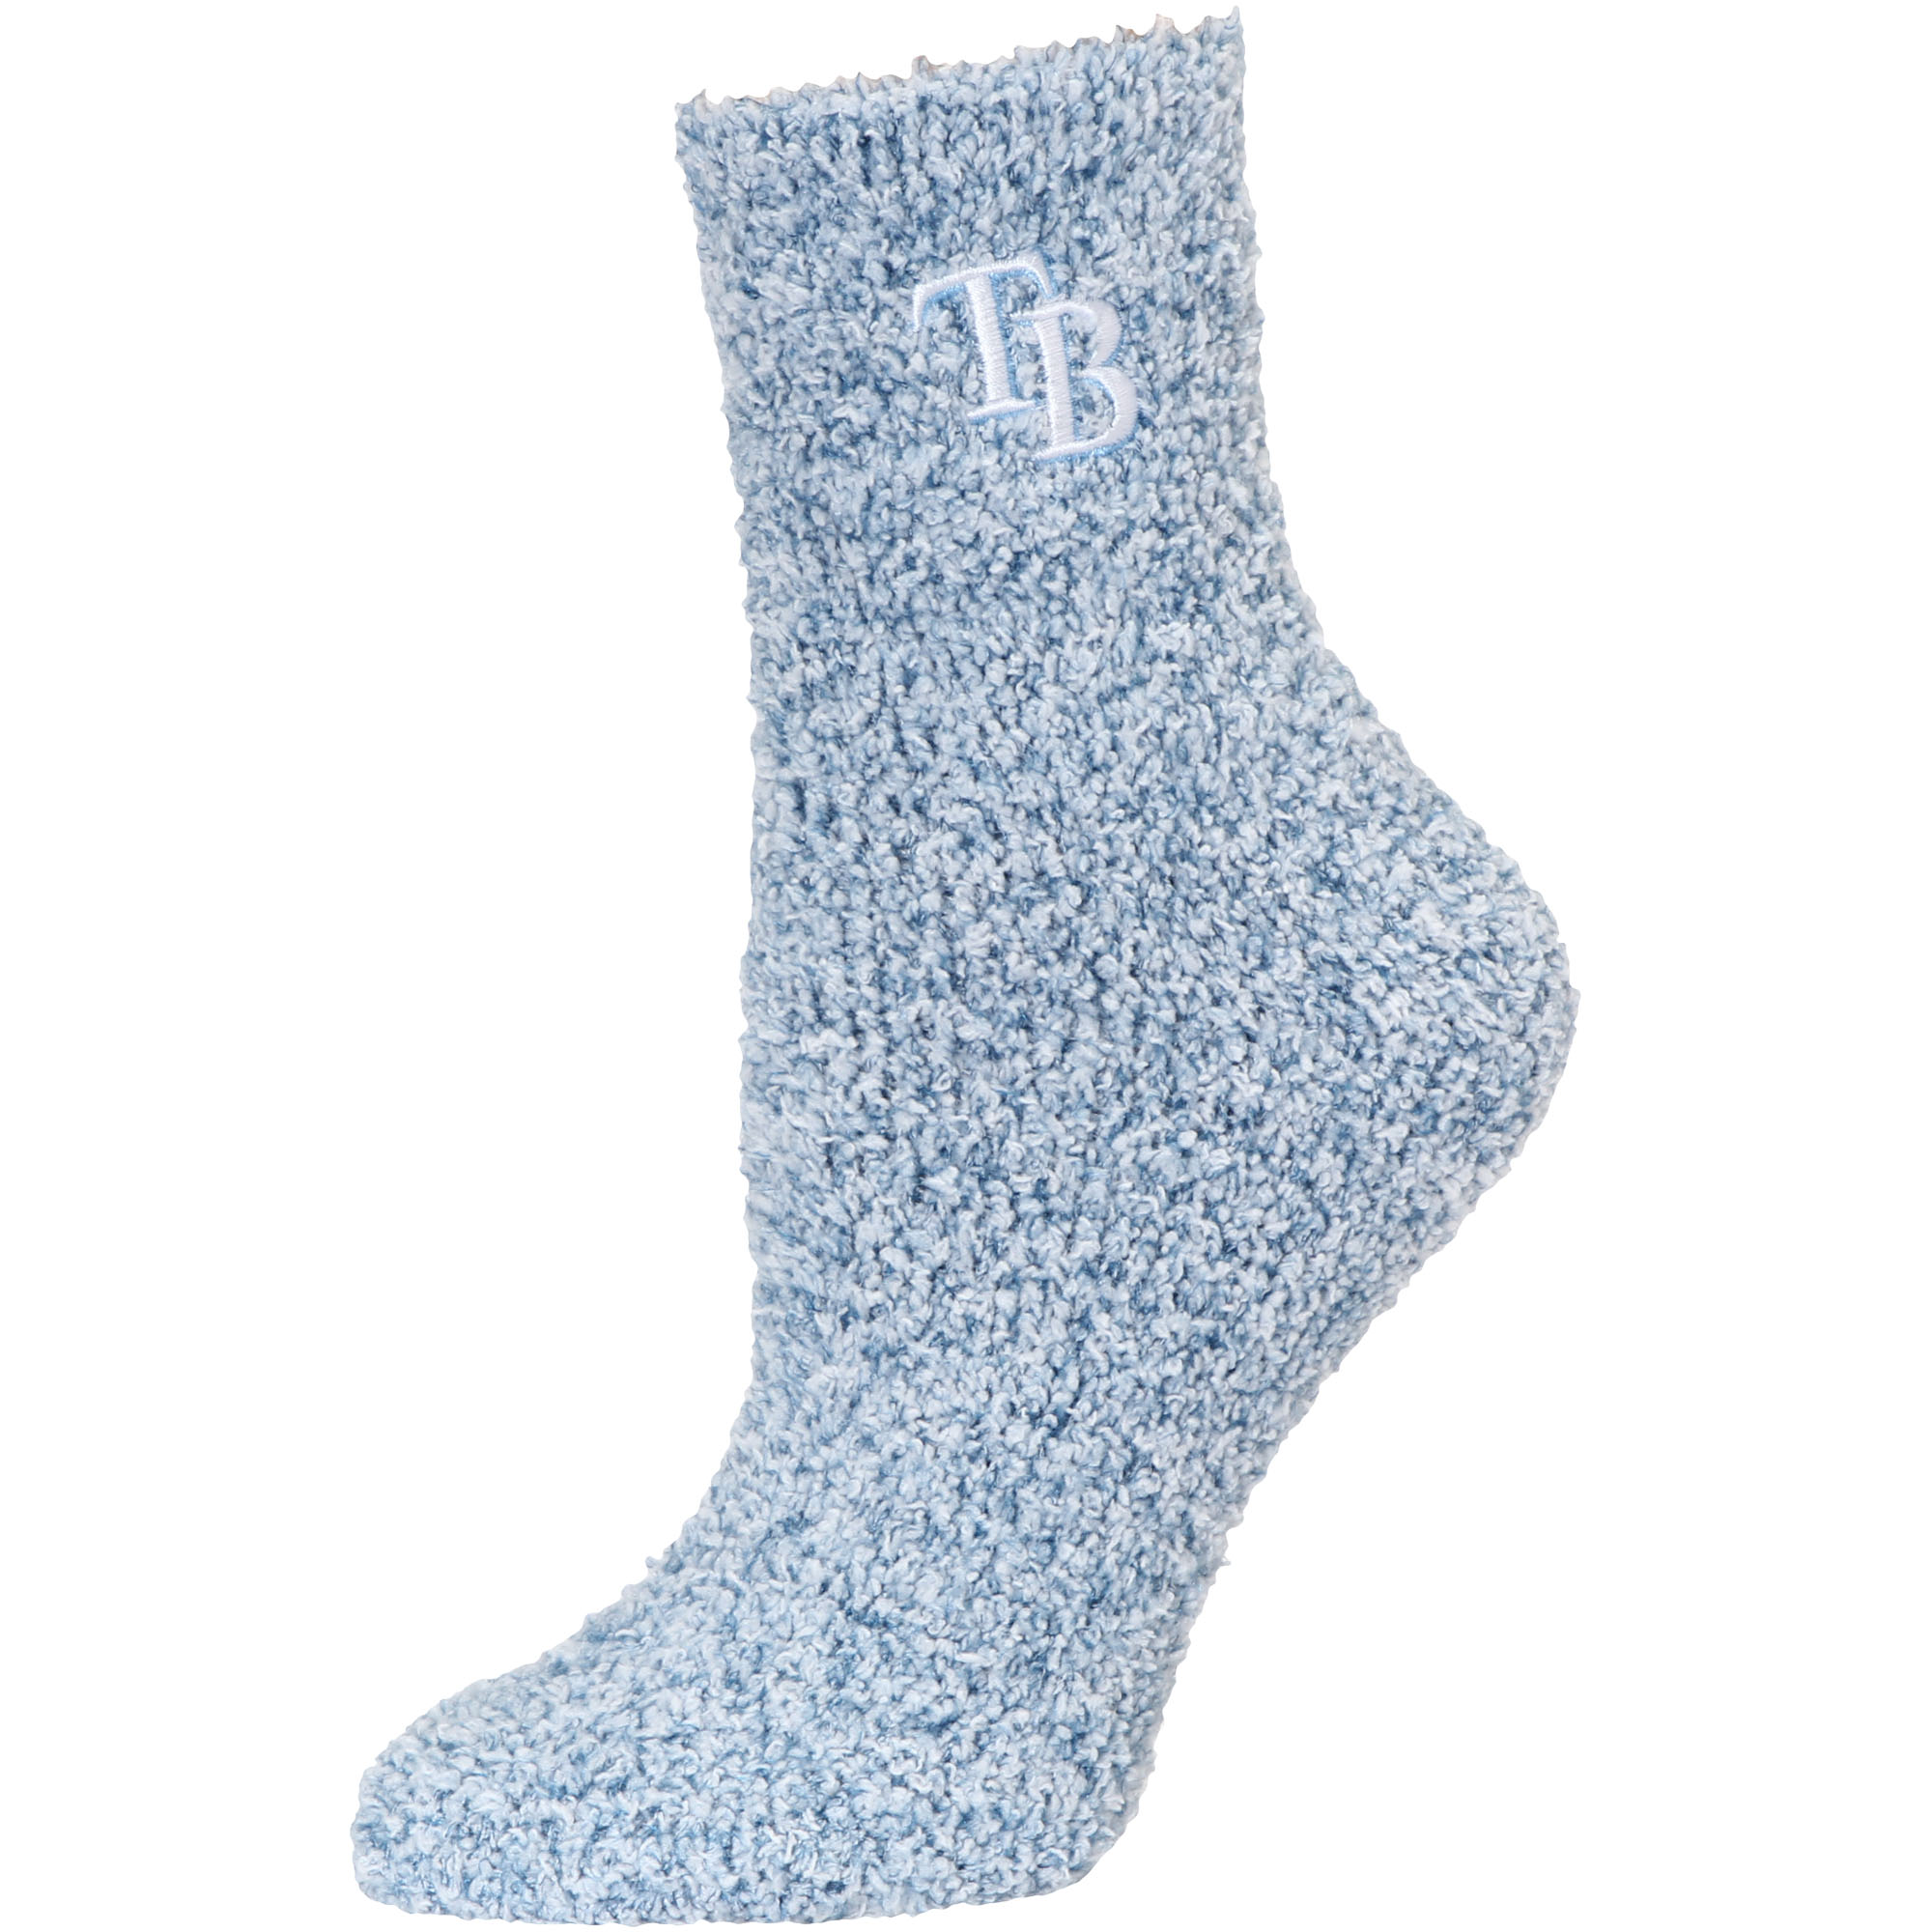 Tampa Bay Rays Women's Fuzzy Block Tri-Blend Socks - Navy - M